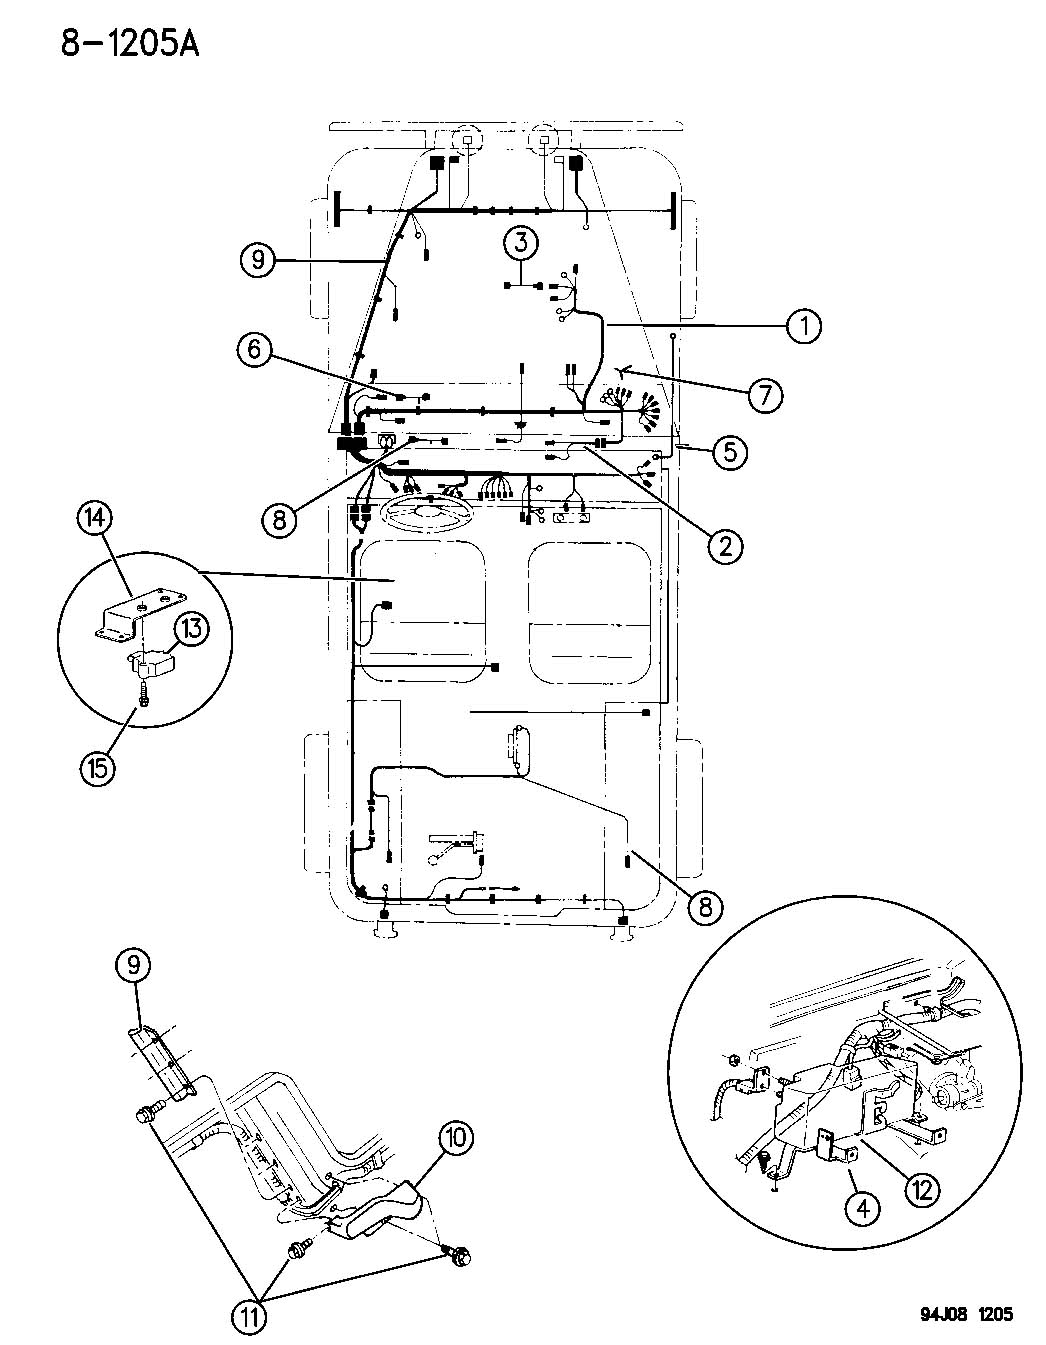 1998 Jeep Wrangler Engine Diagram on 1998 Jeep Wrangler Brake Lights Wiring Diagram